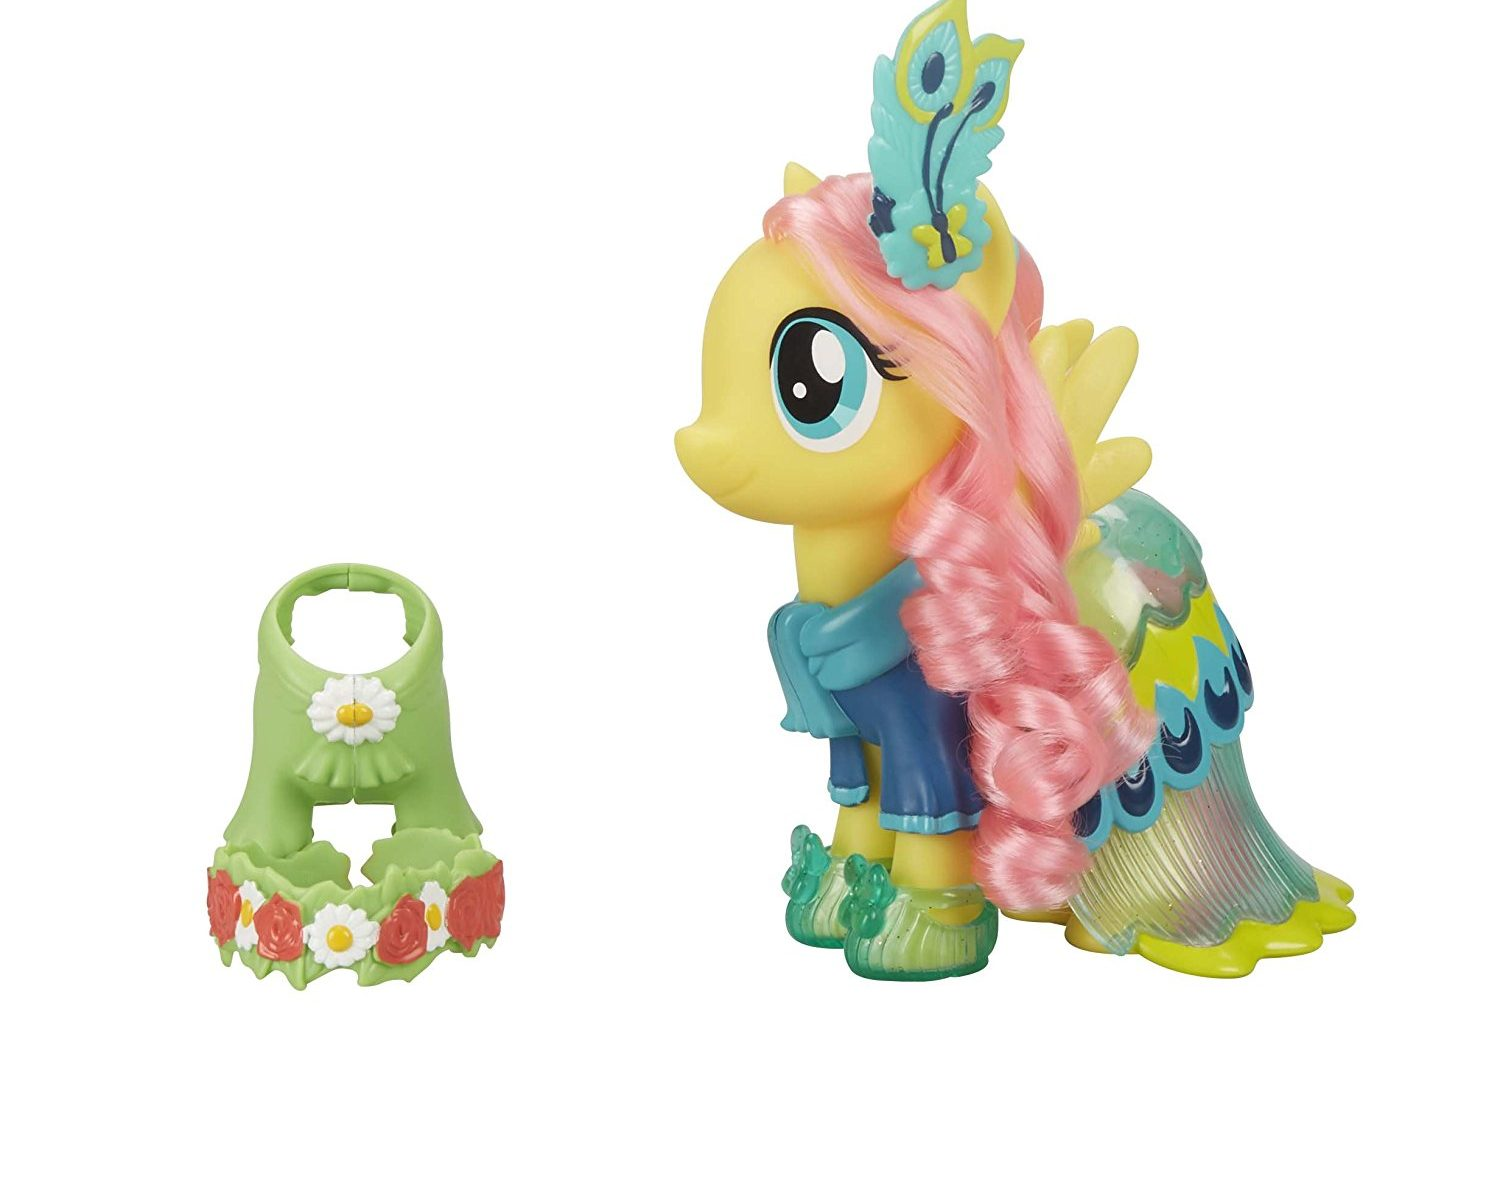 """New """"My Little Pony: The Movie"""" Snap-On Fashion Fluttershy Figure Set  available on Amazon.com - My Little Pony Movie Toys"""